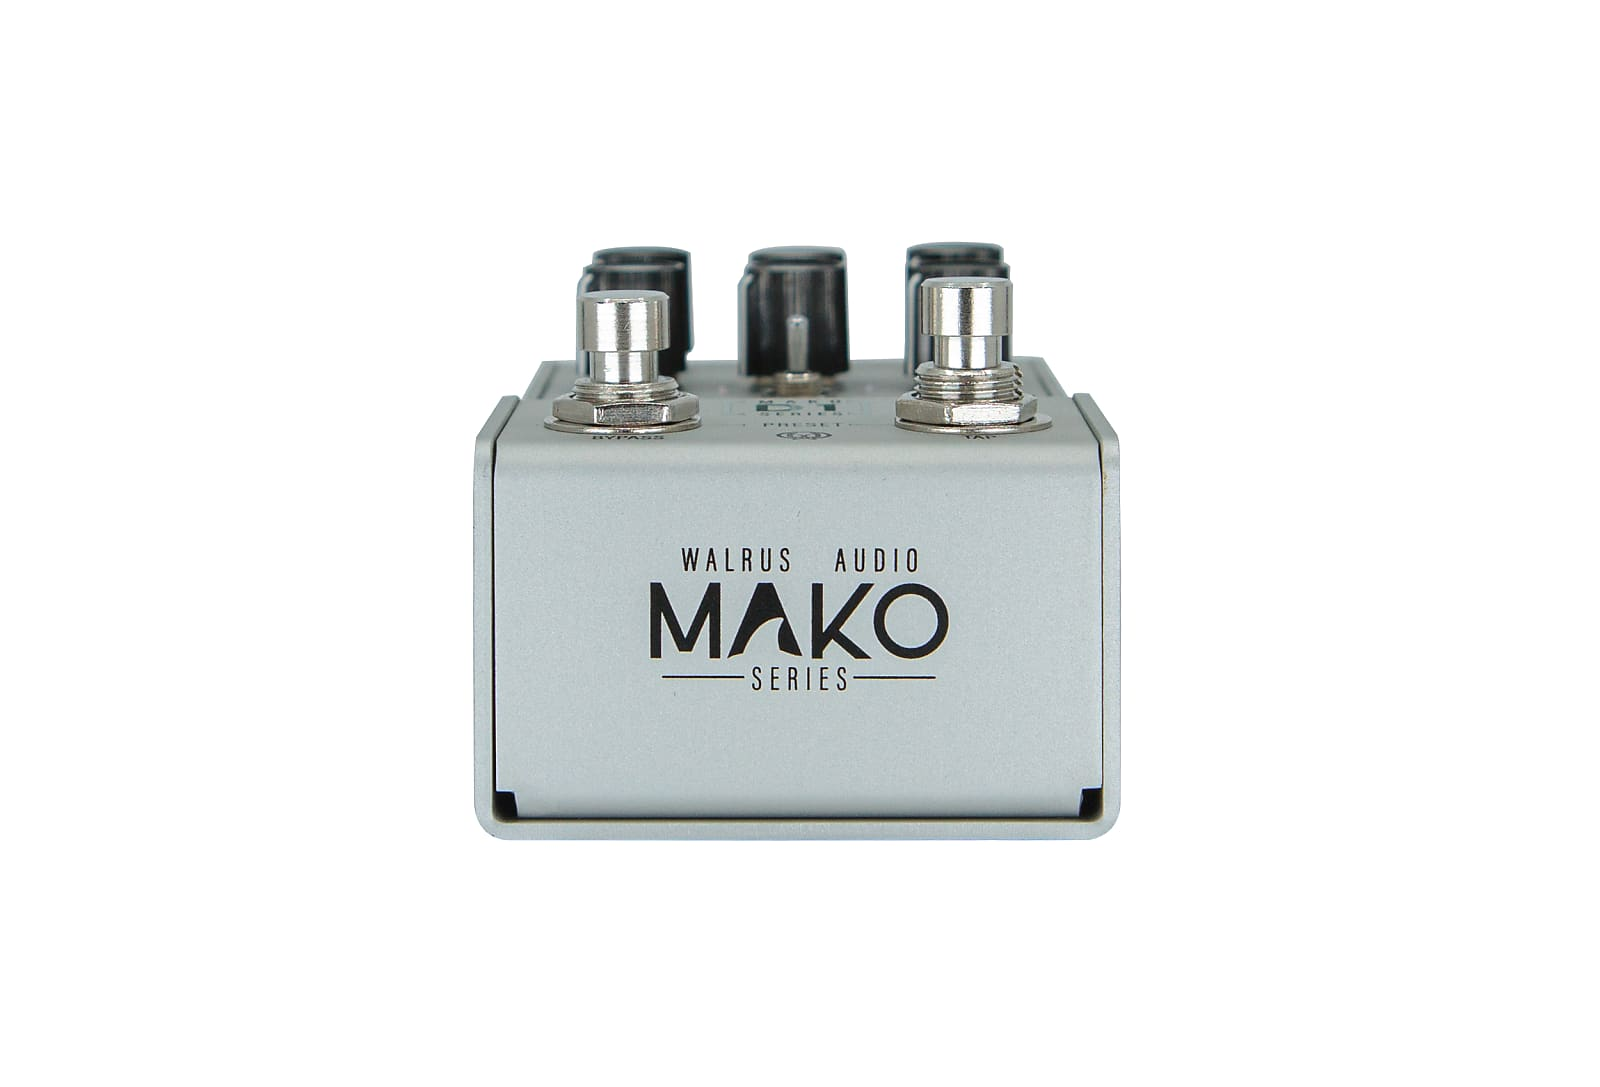 Walrus Audio MAKO Series D1 High-Fidelity Stereo Delay Effects Pedal